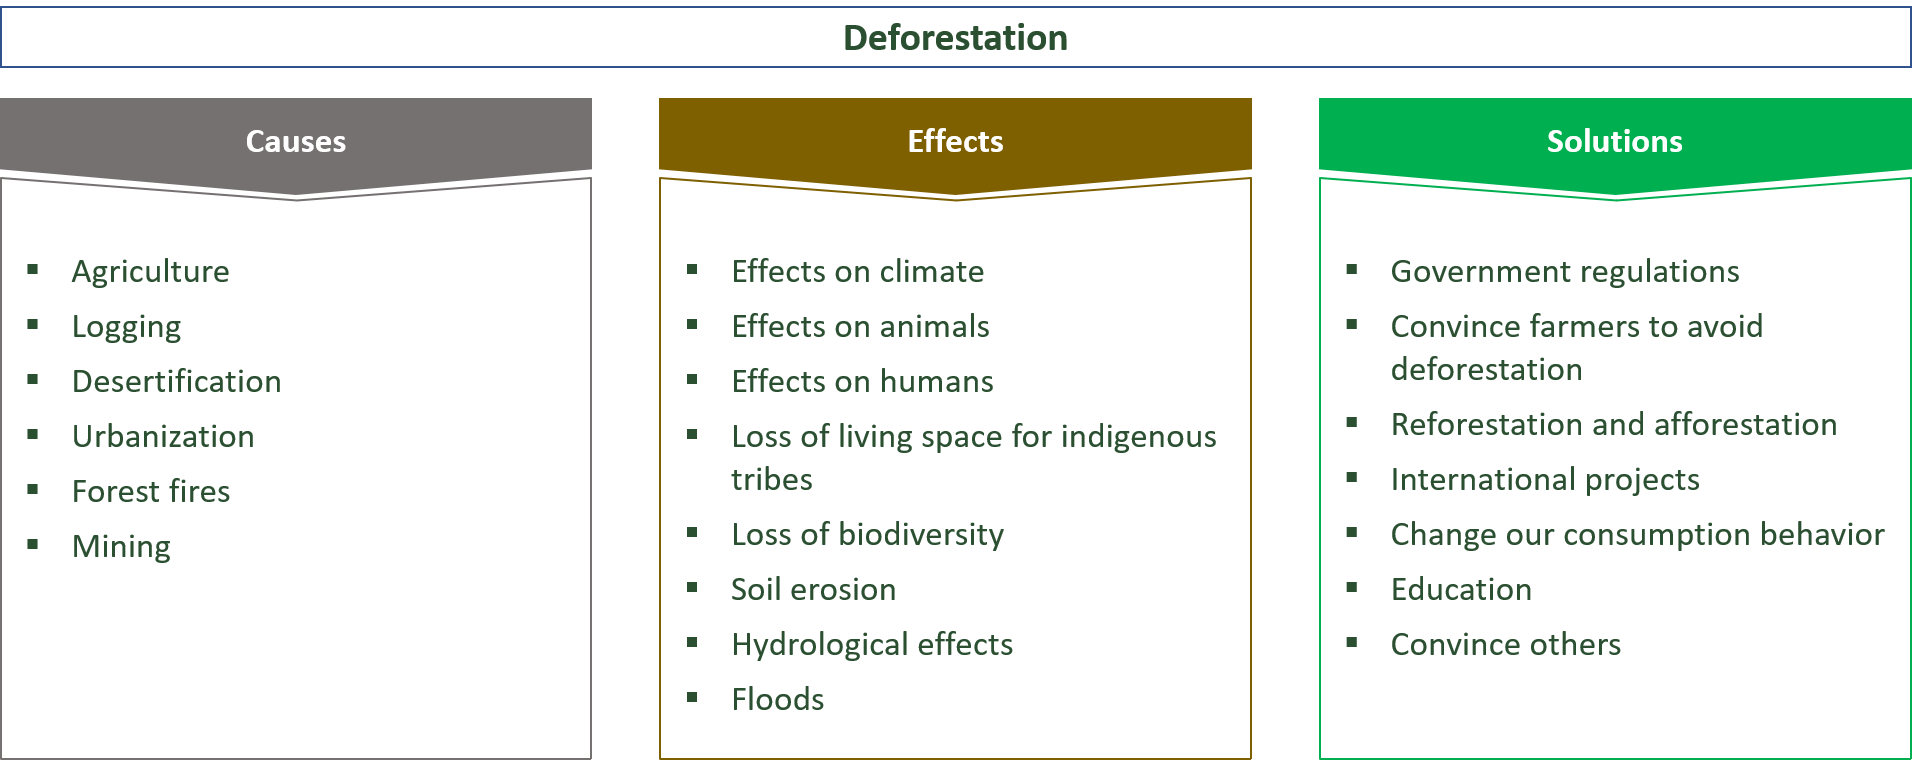 causes, effects and solutions for deforestation